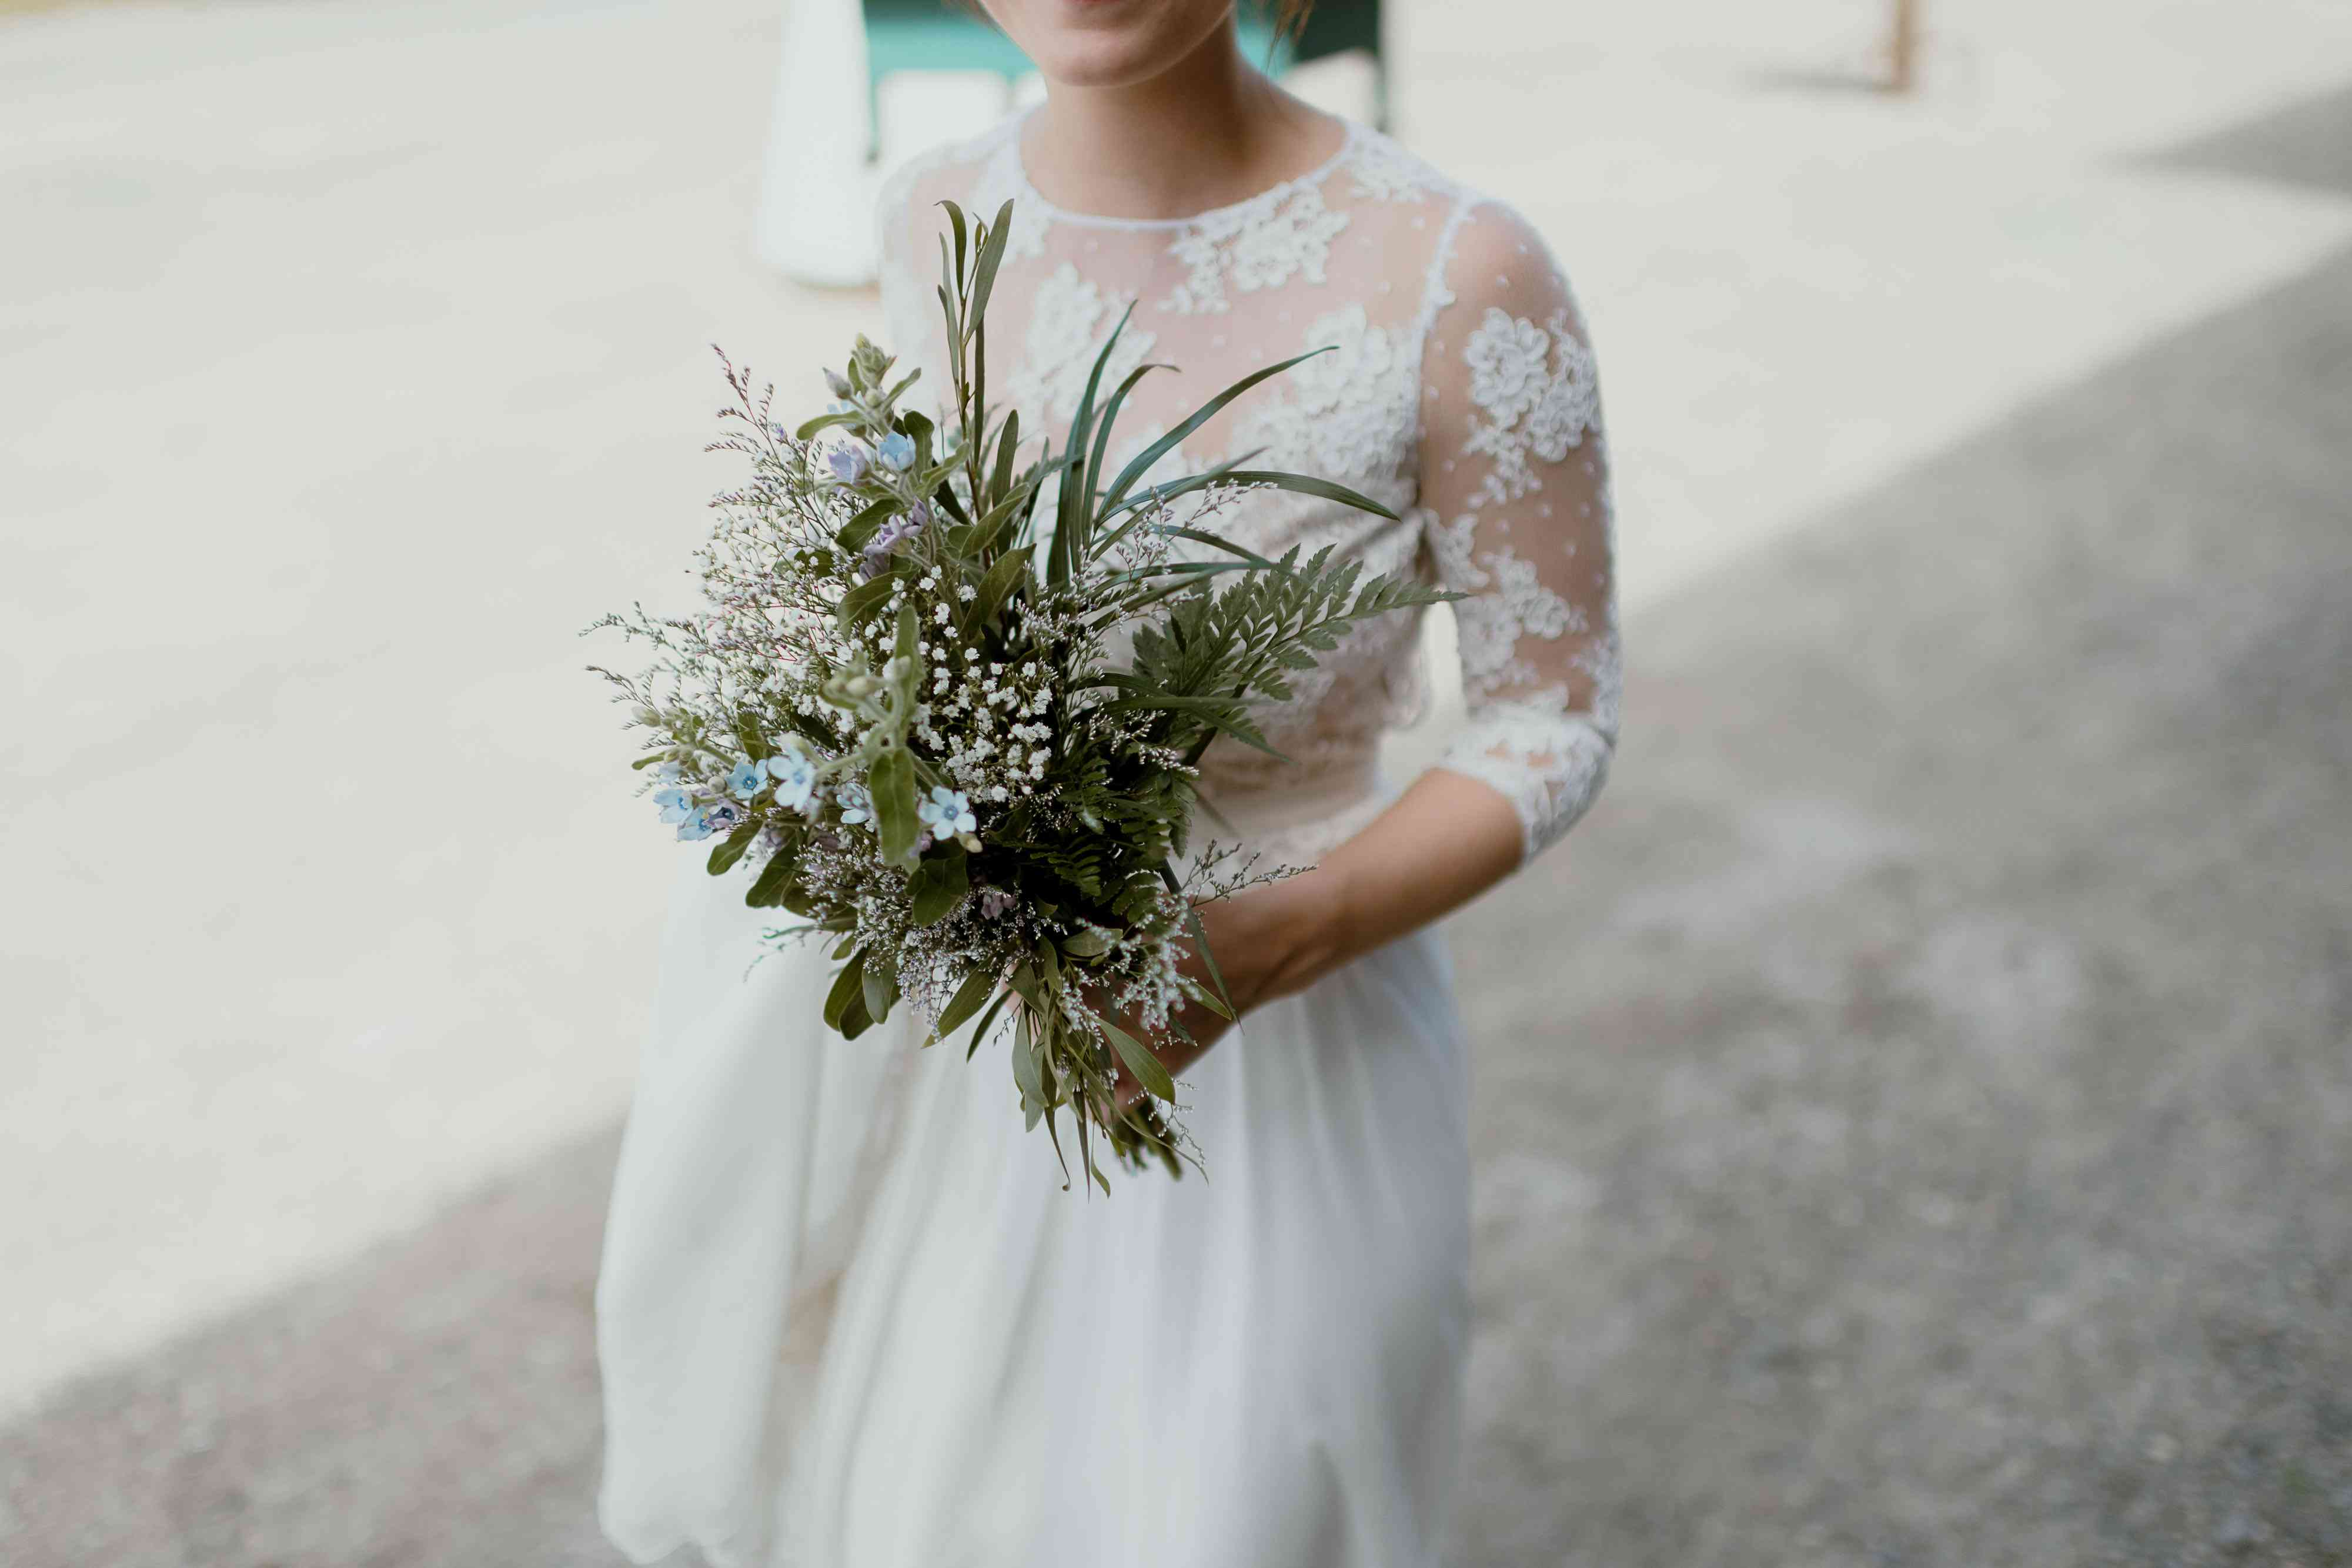 A Modern-Meets-Industrial Wedding in Upstate New York